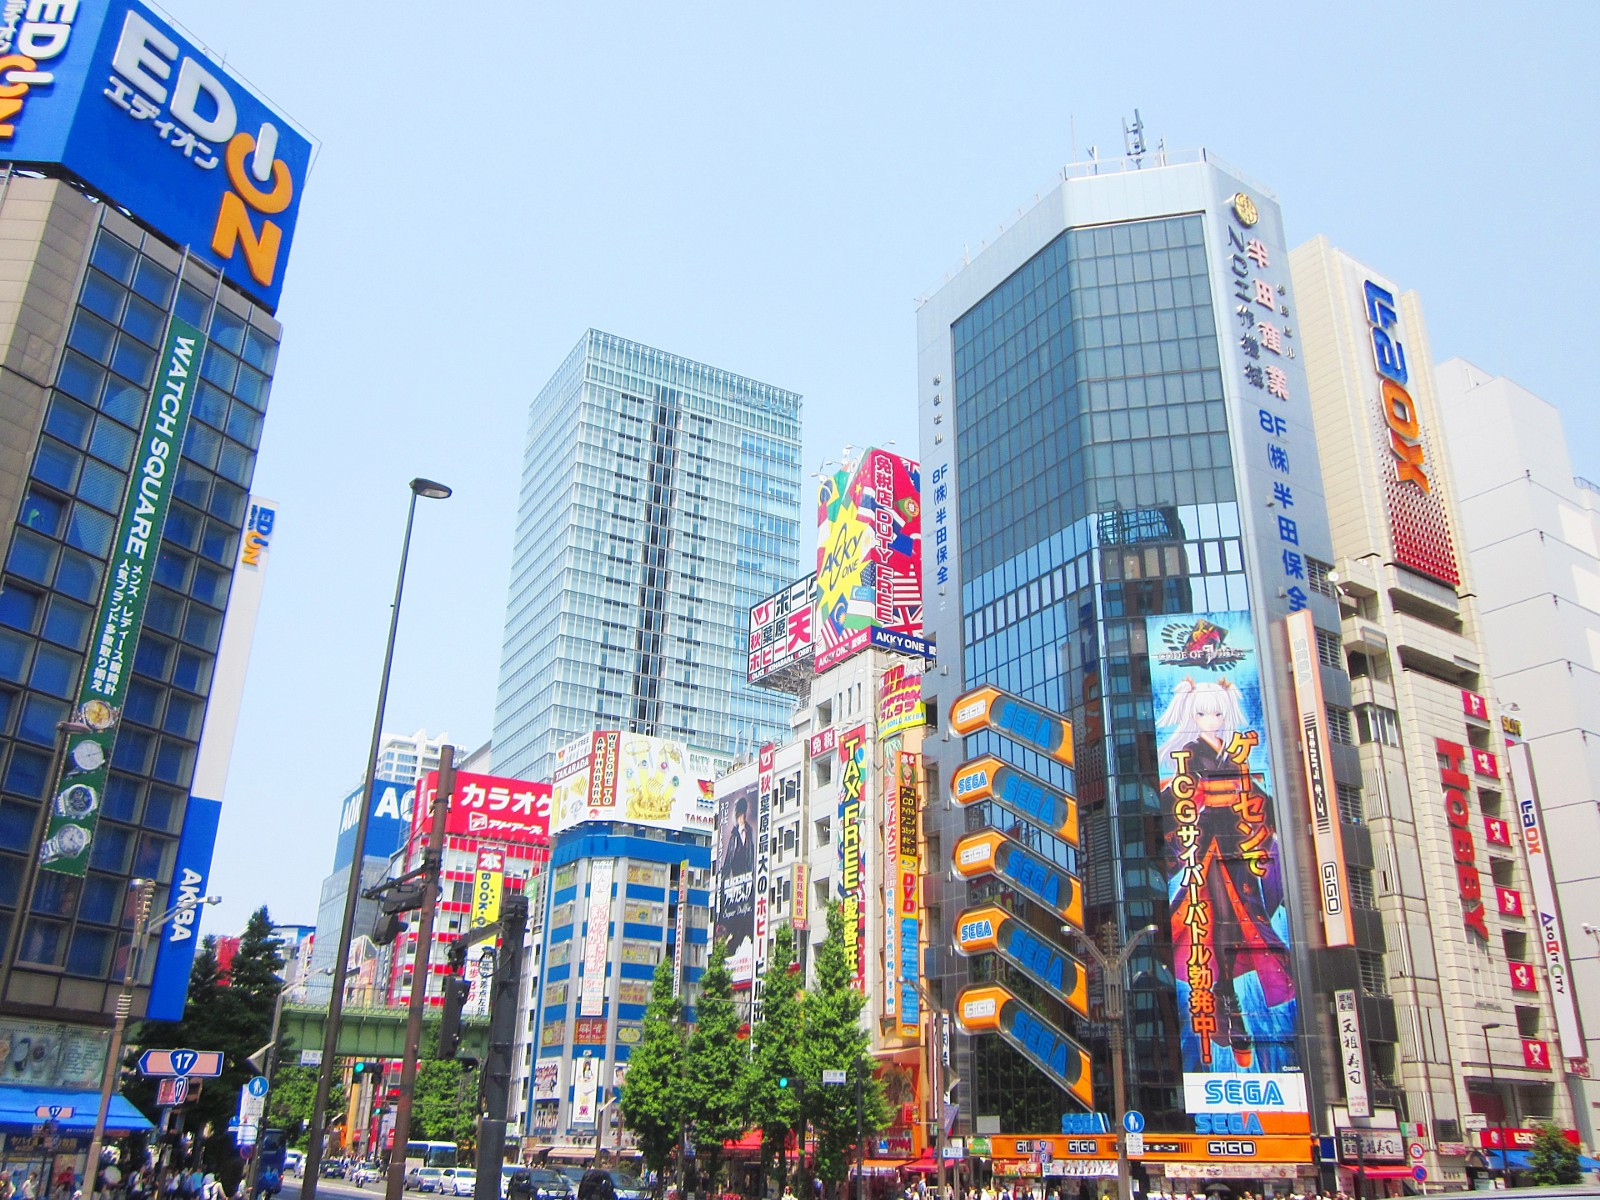 Akihabara offers hundreds of shops related to Otaku culture